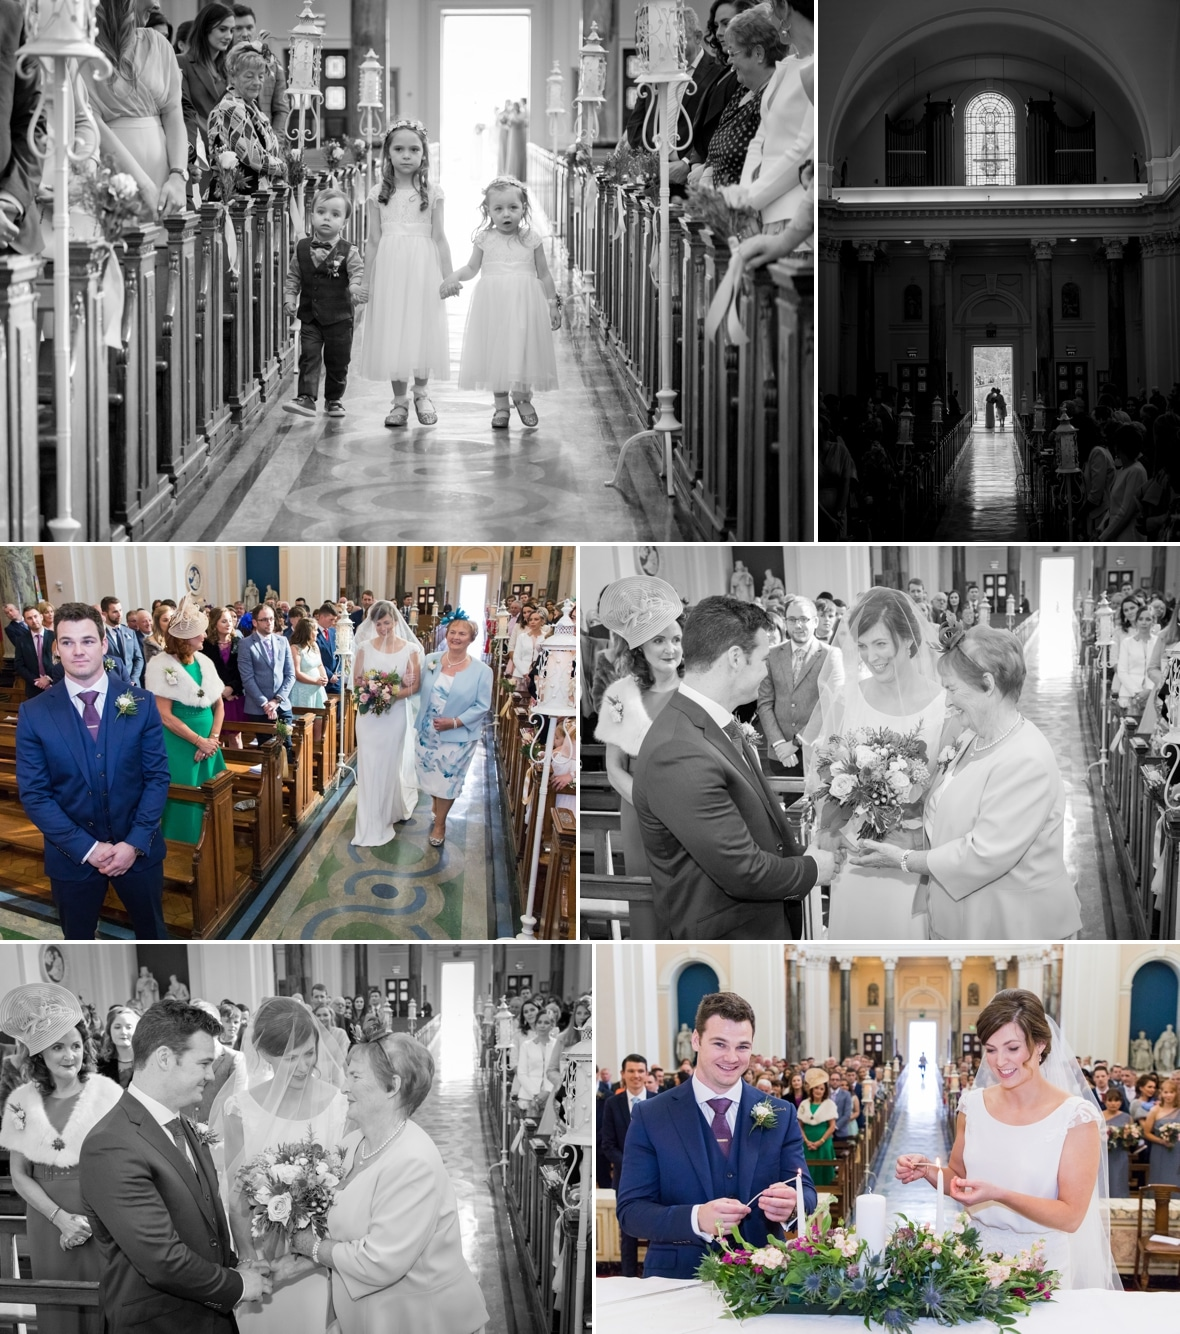 St Peter and Paul's Church Wedding in Athlone